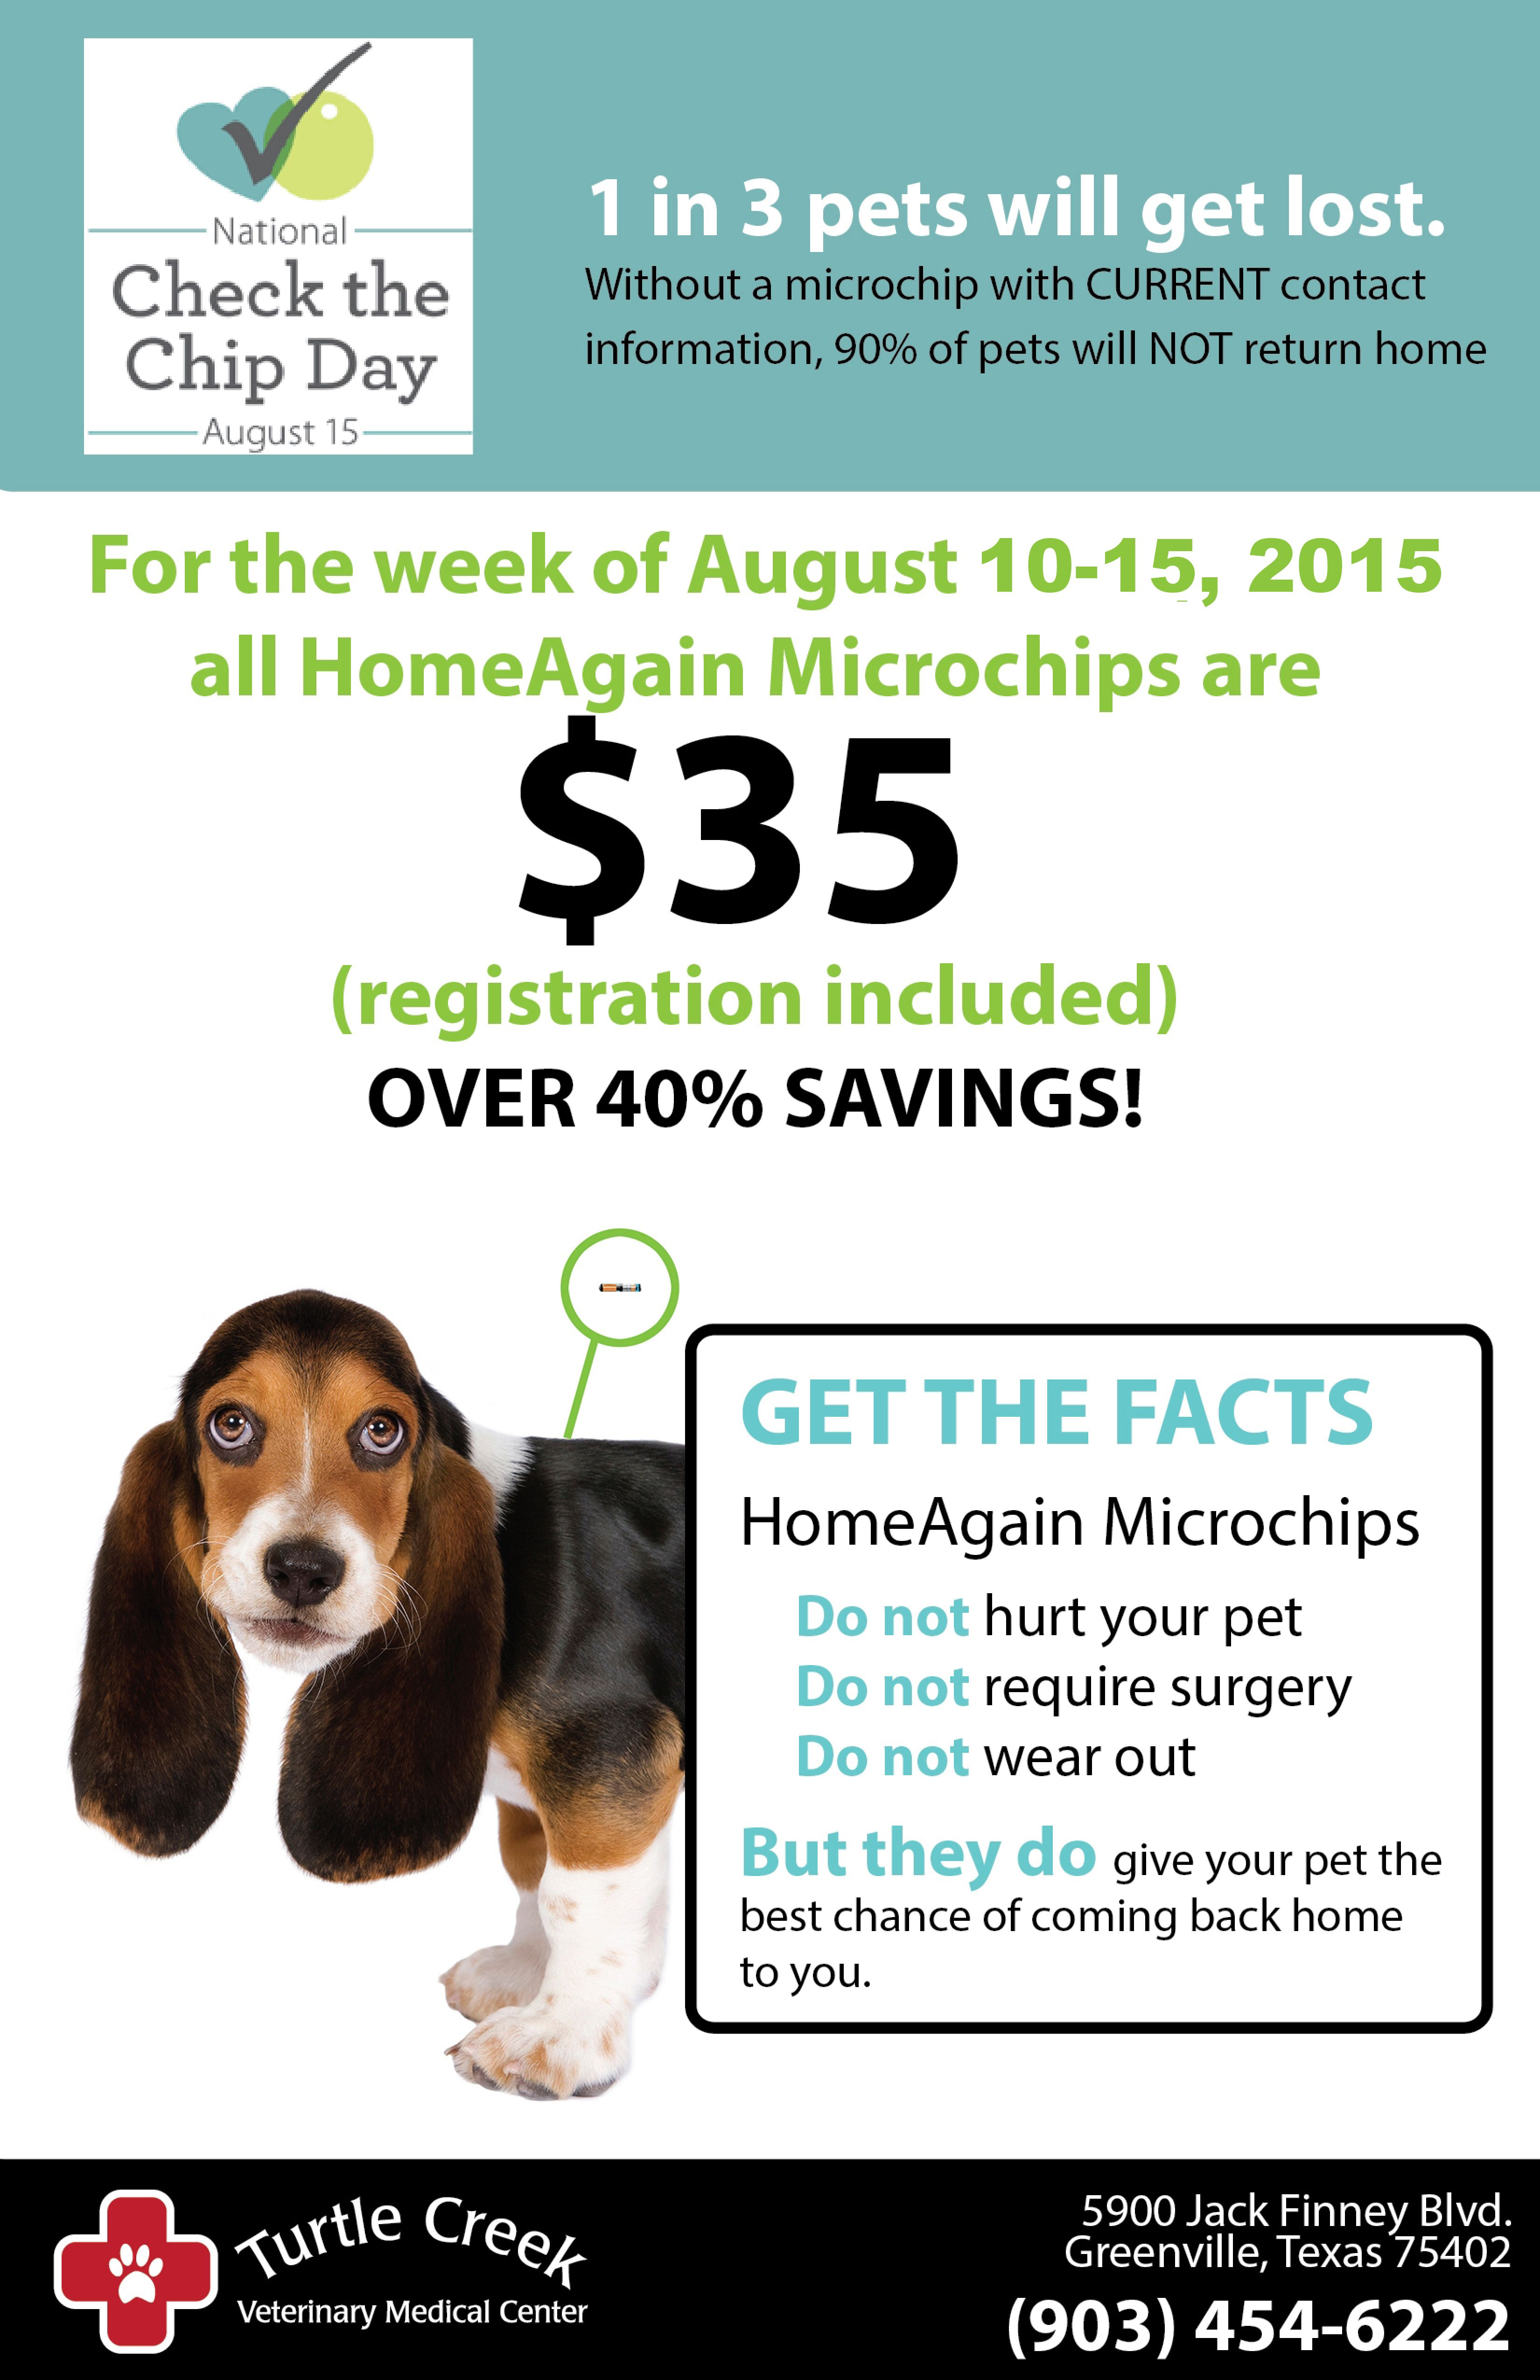 Microchip your pet! Next week, in honor of Check the Chip